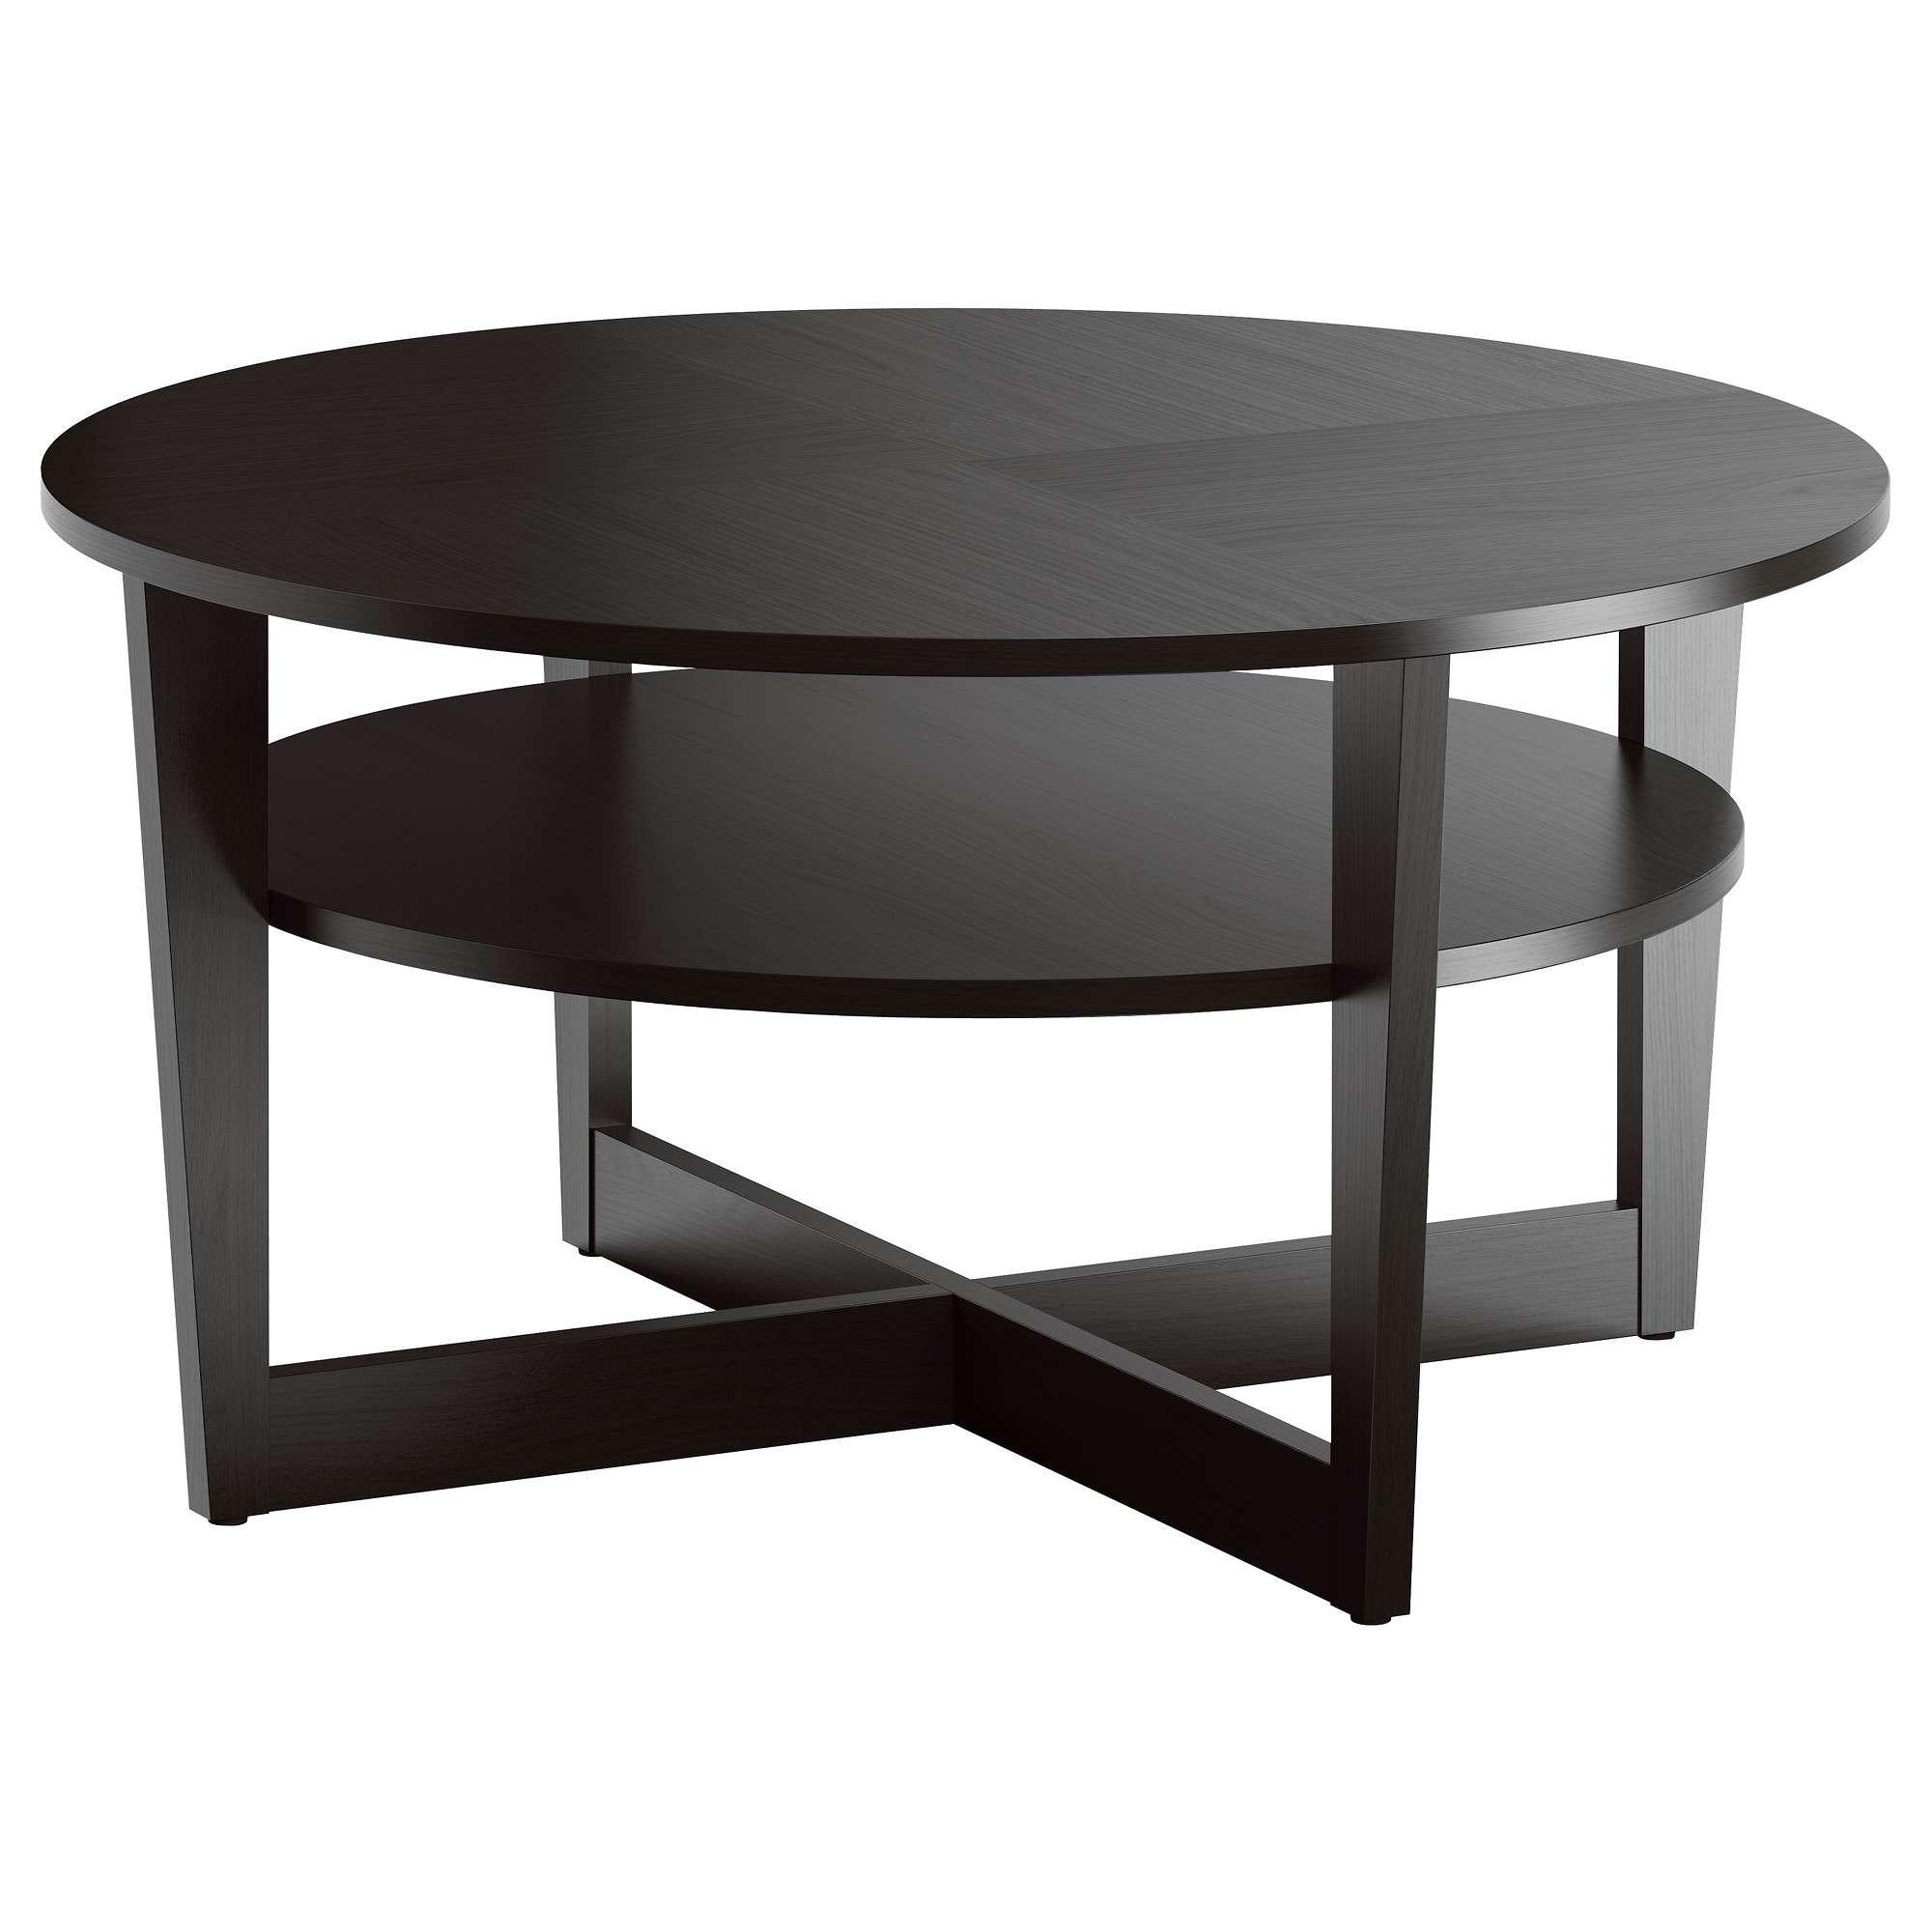 Vejmon Coffee Table – Black Brown – Ikea Intended For Popular White And Black Coffee Tables (Gallery 9 of 20)